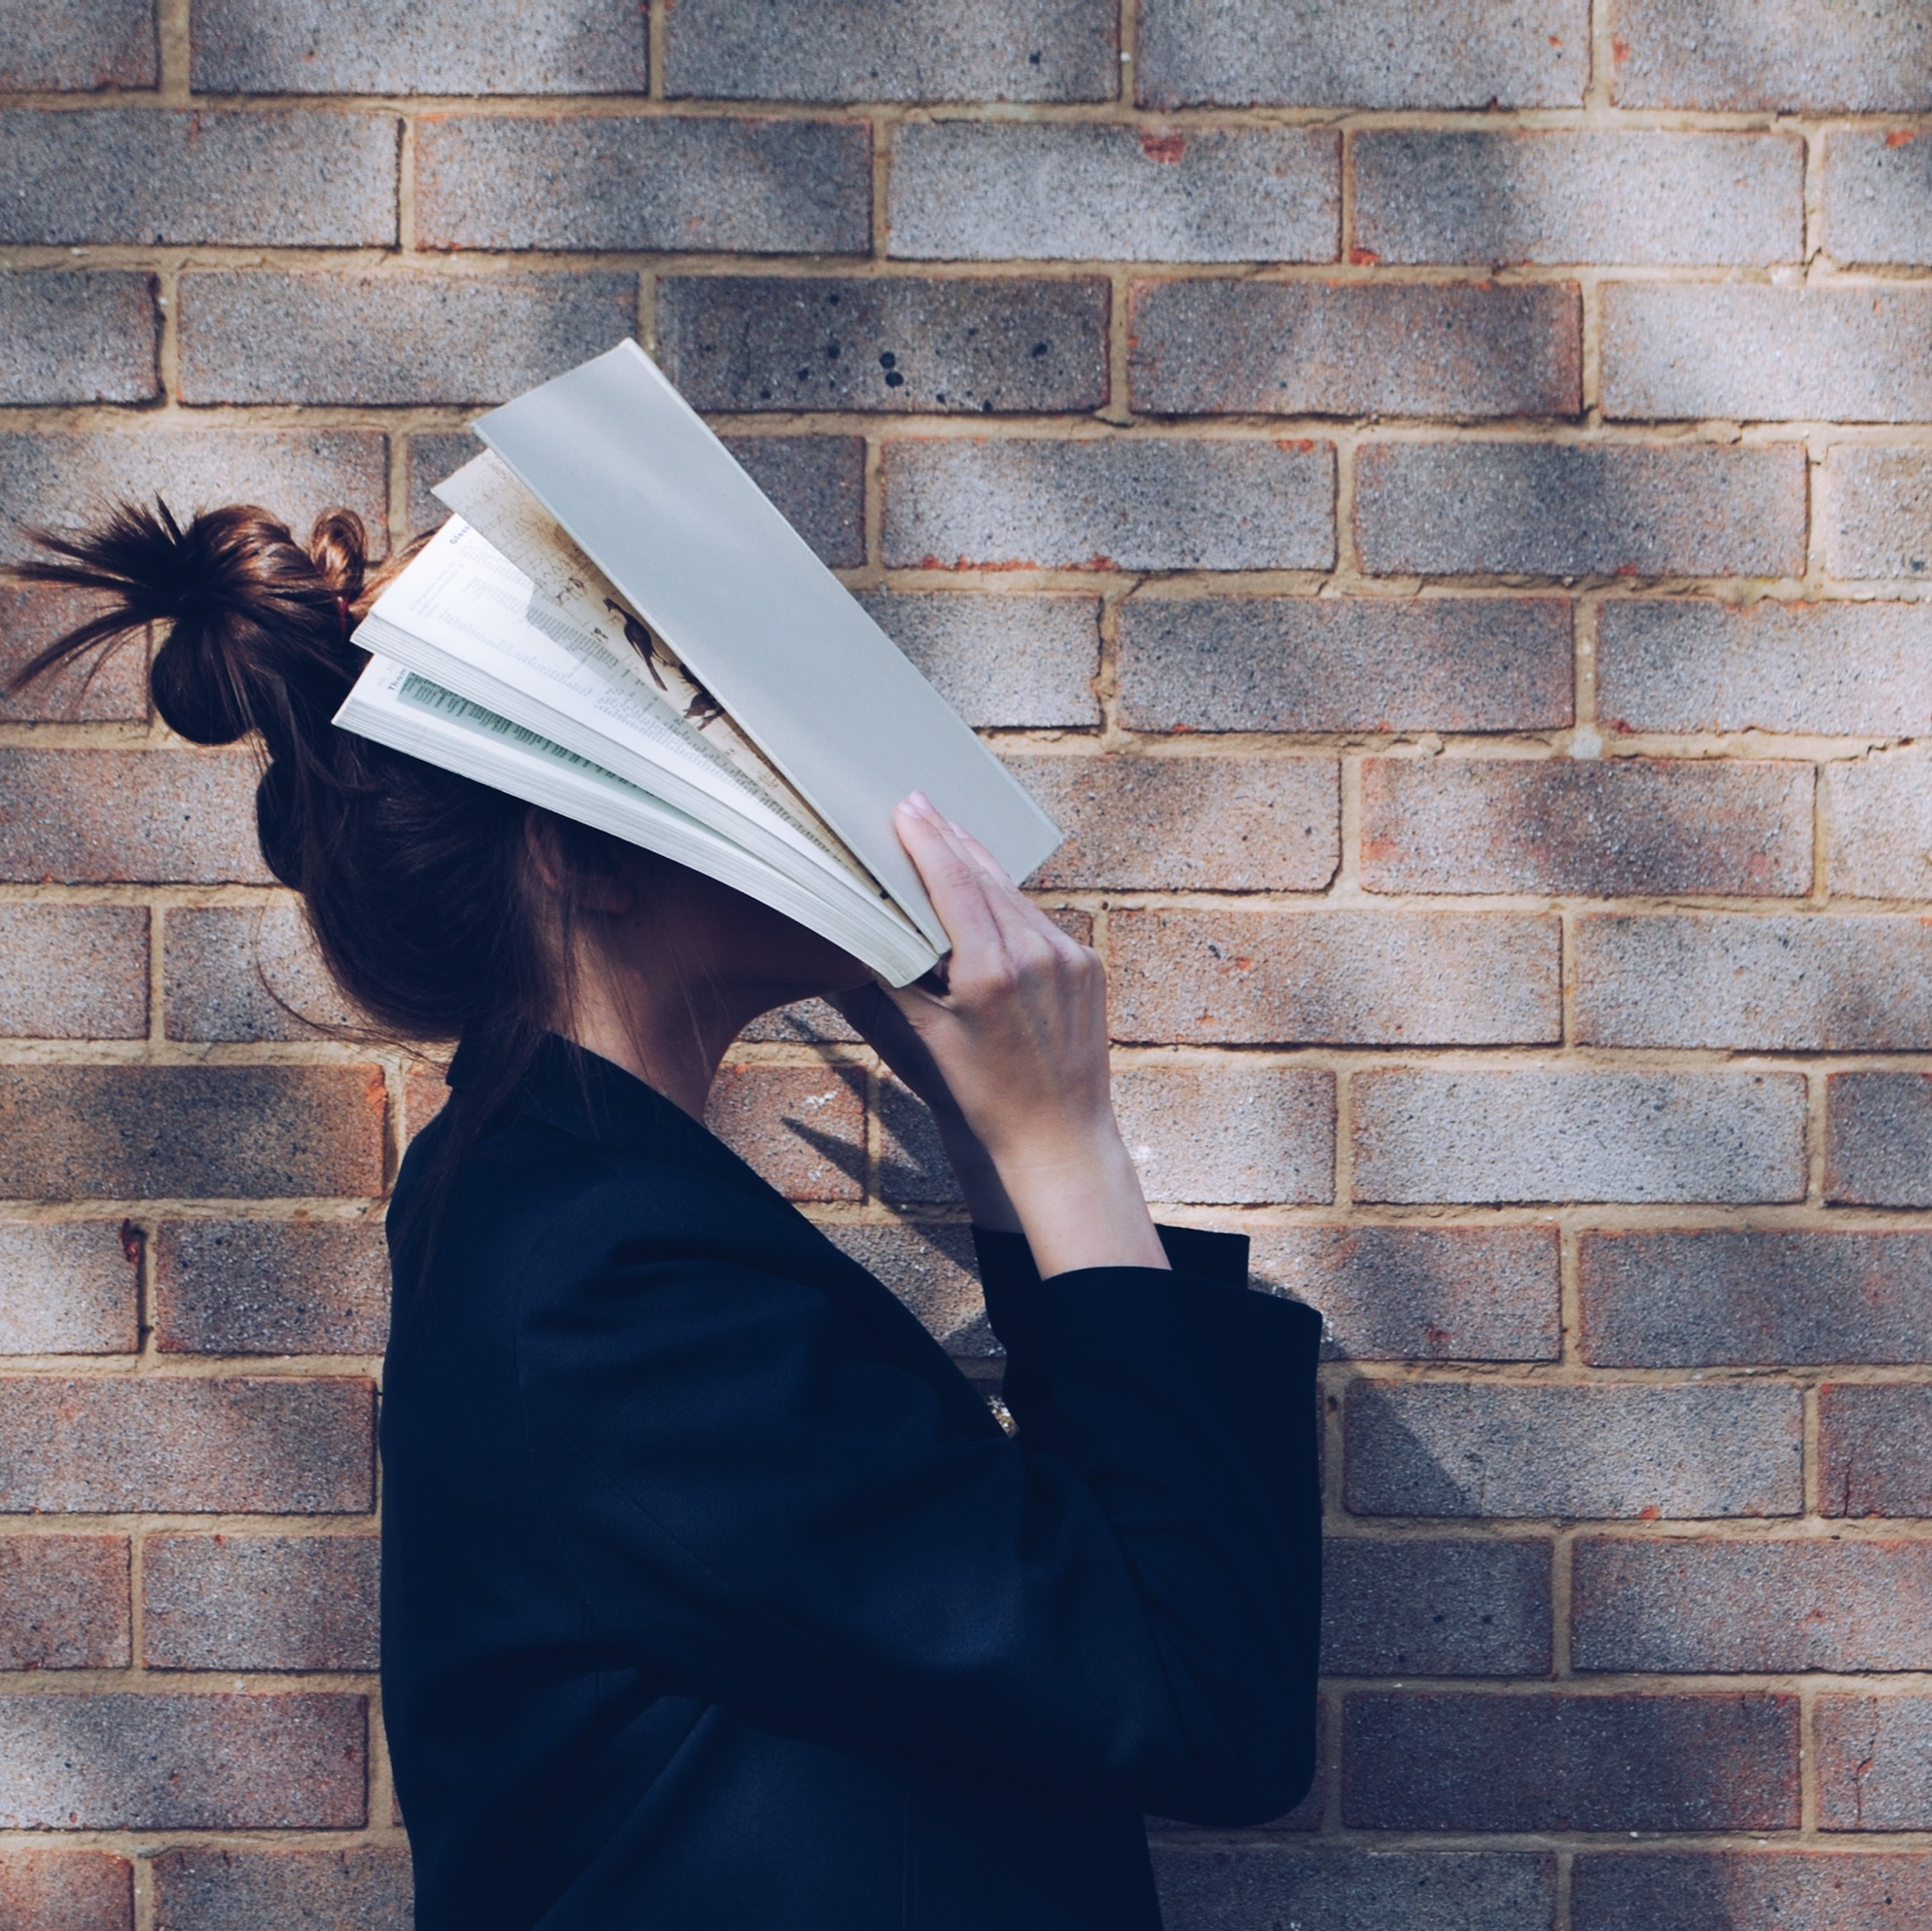 Women covering face with book